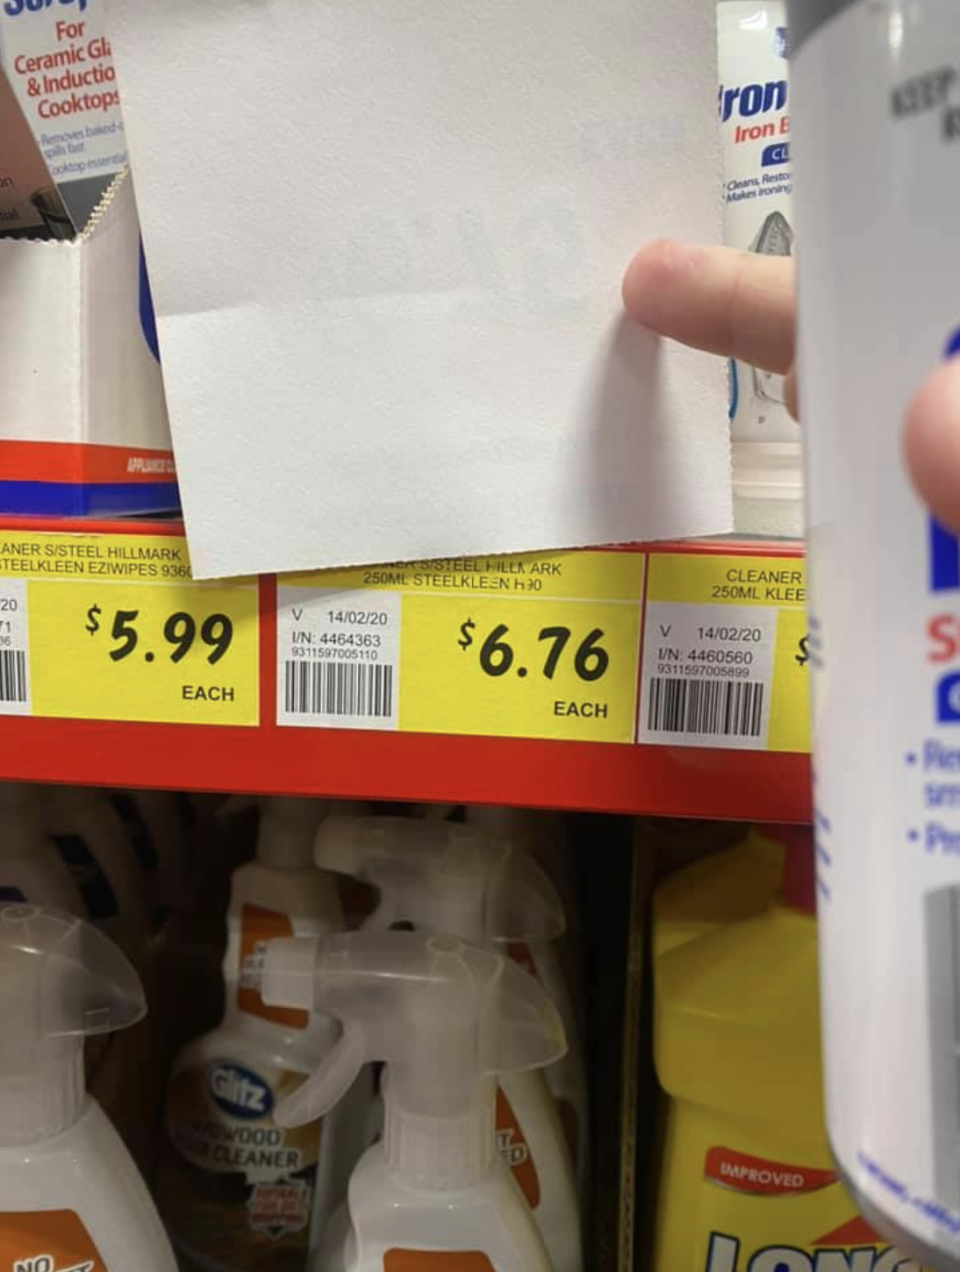 The label beneath had a higher price, pictured here.